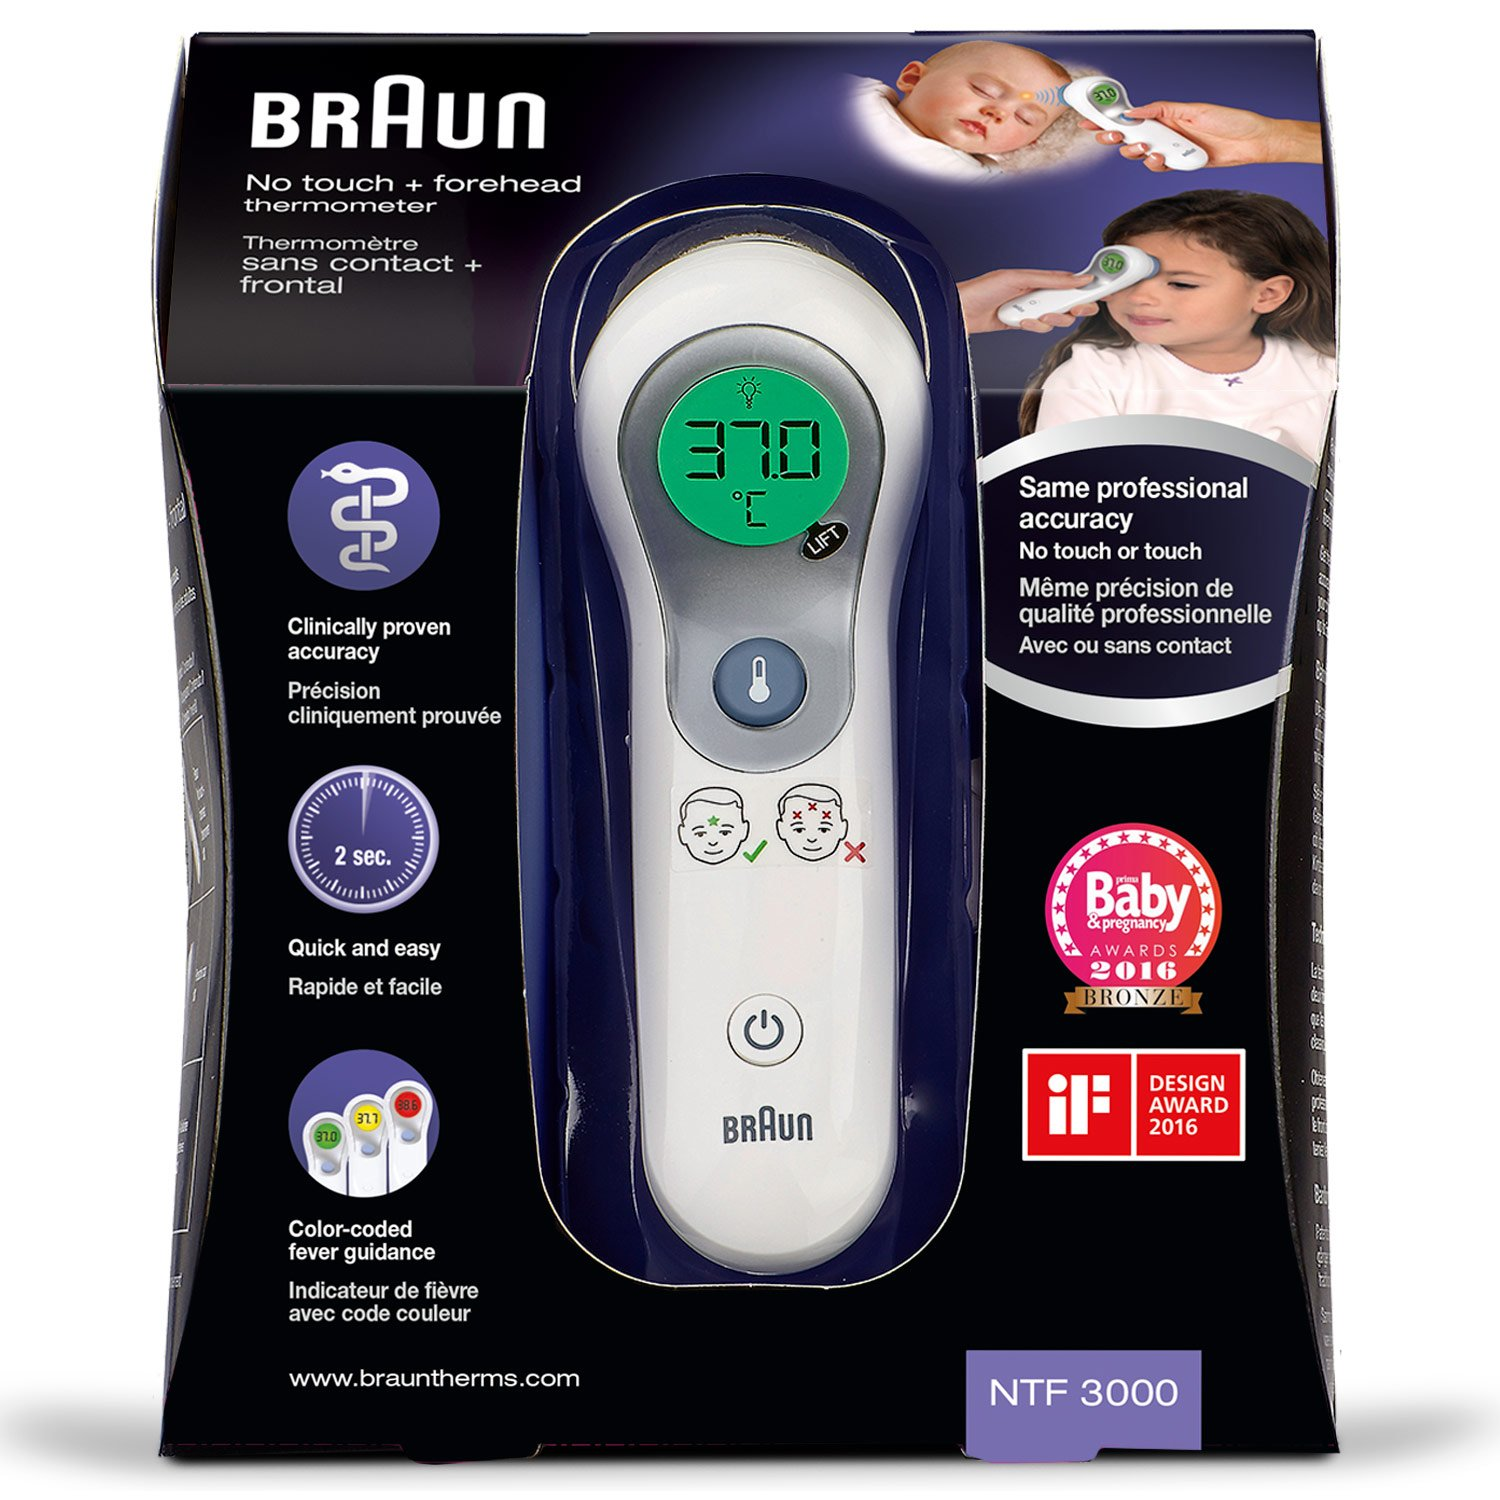 Braun Thermometer 2 in 1 No-Touch + Front